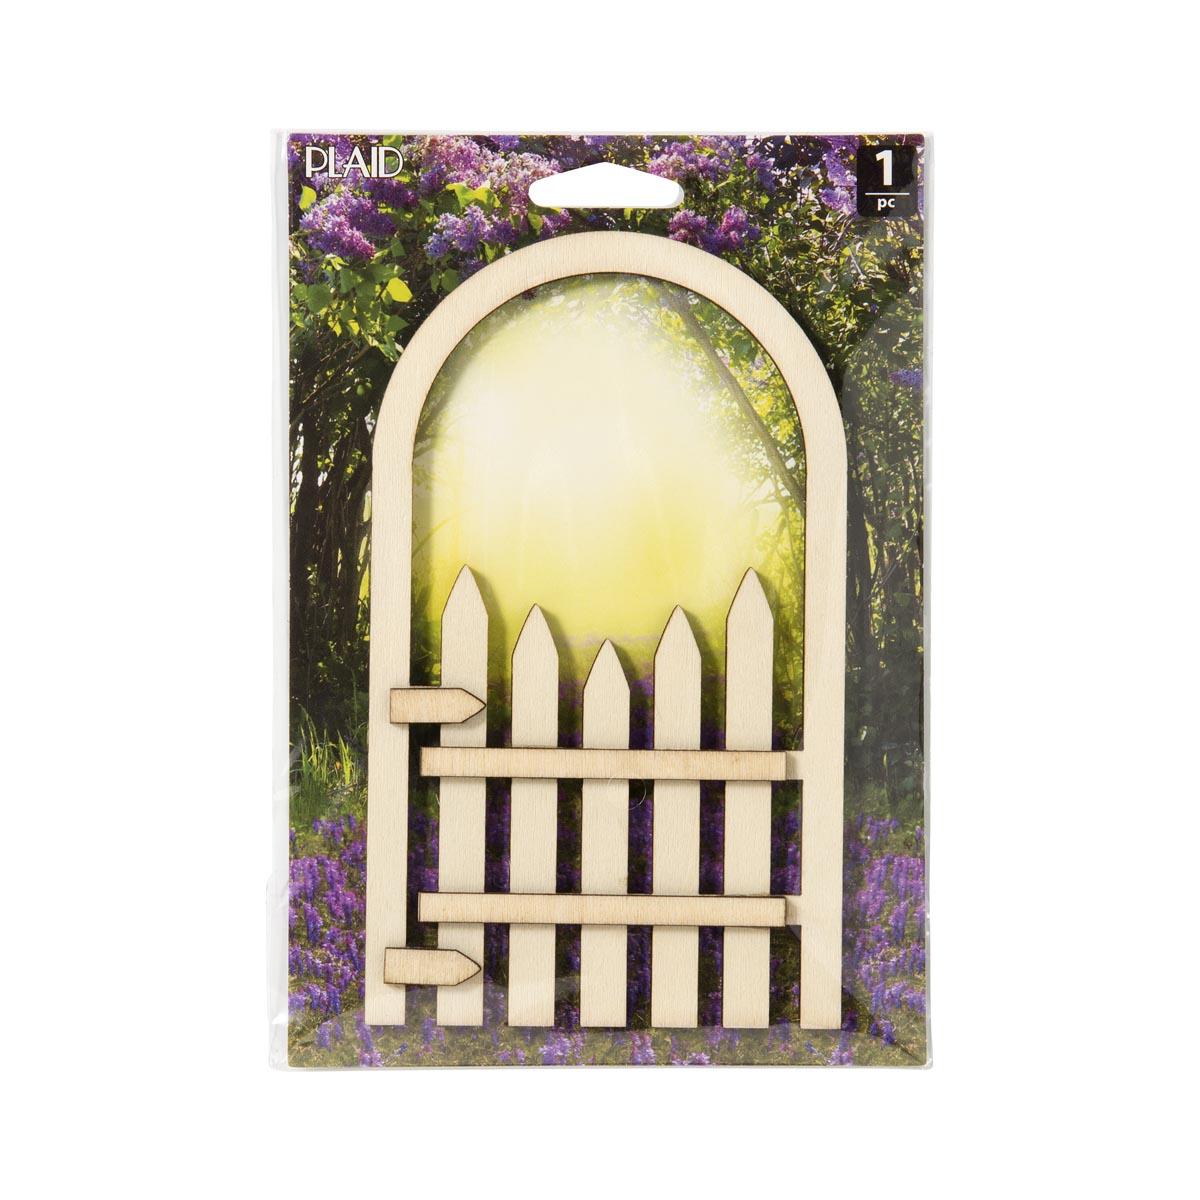 Plaid ® Wood Surfaces - Fairy Garden - Fence Gate